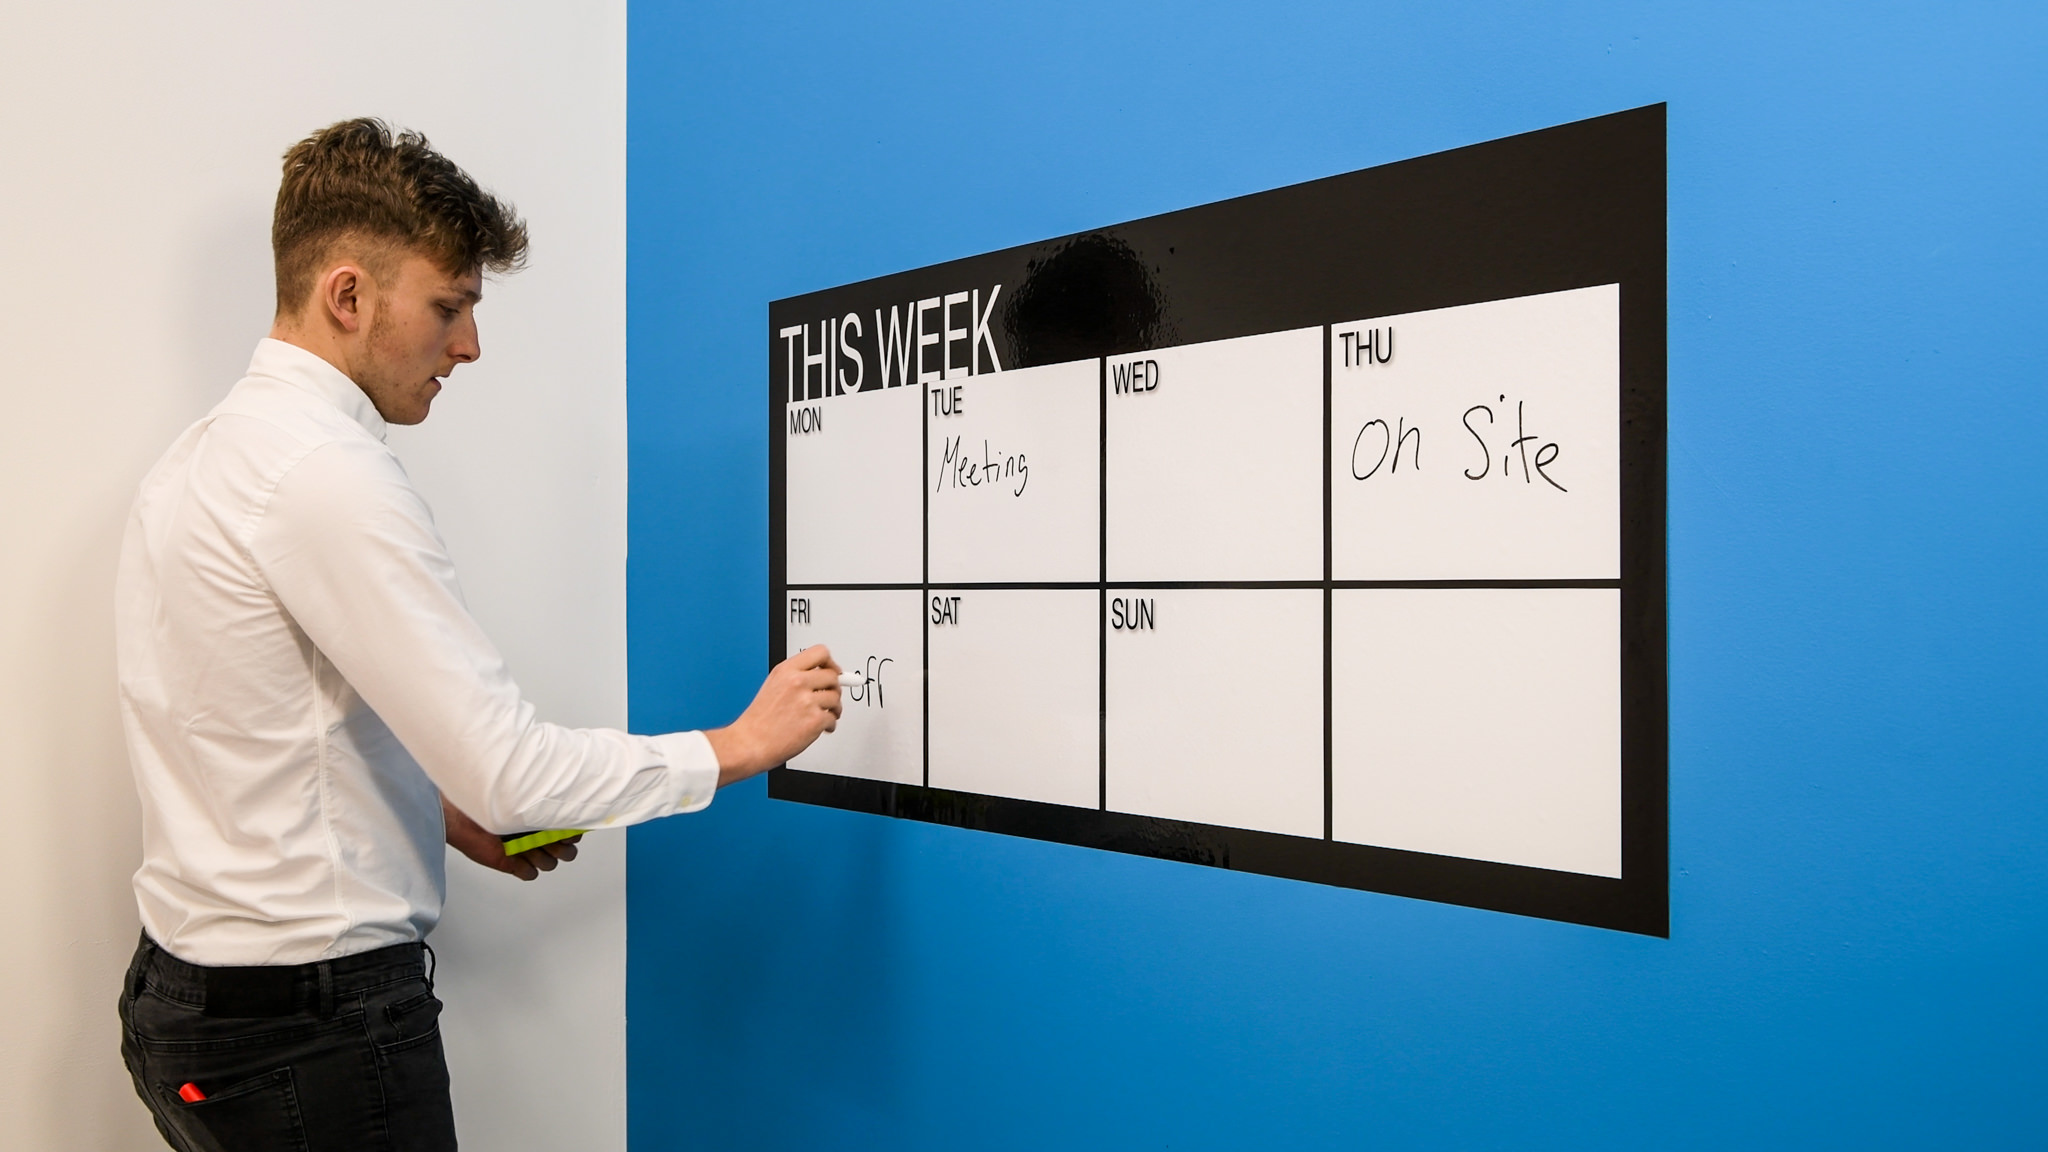 THIS WEEK - Whiteboard planner and whiteboard calendar